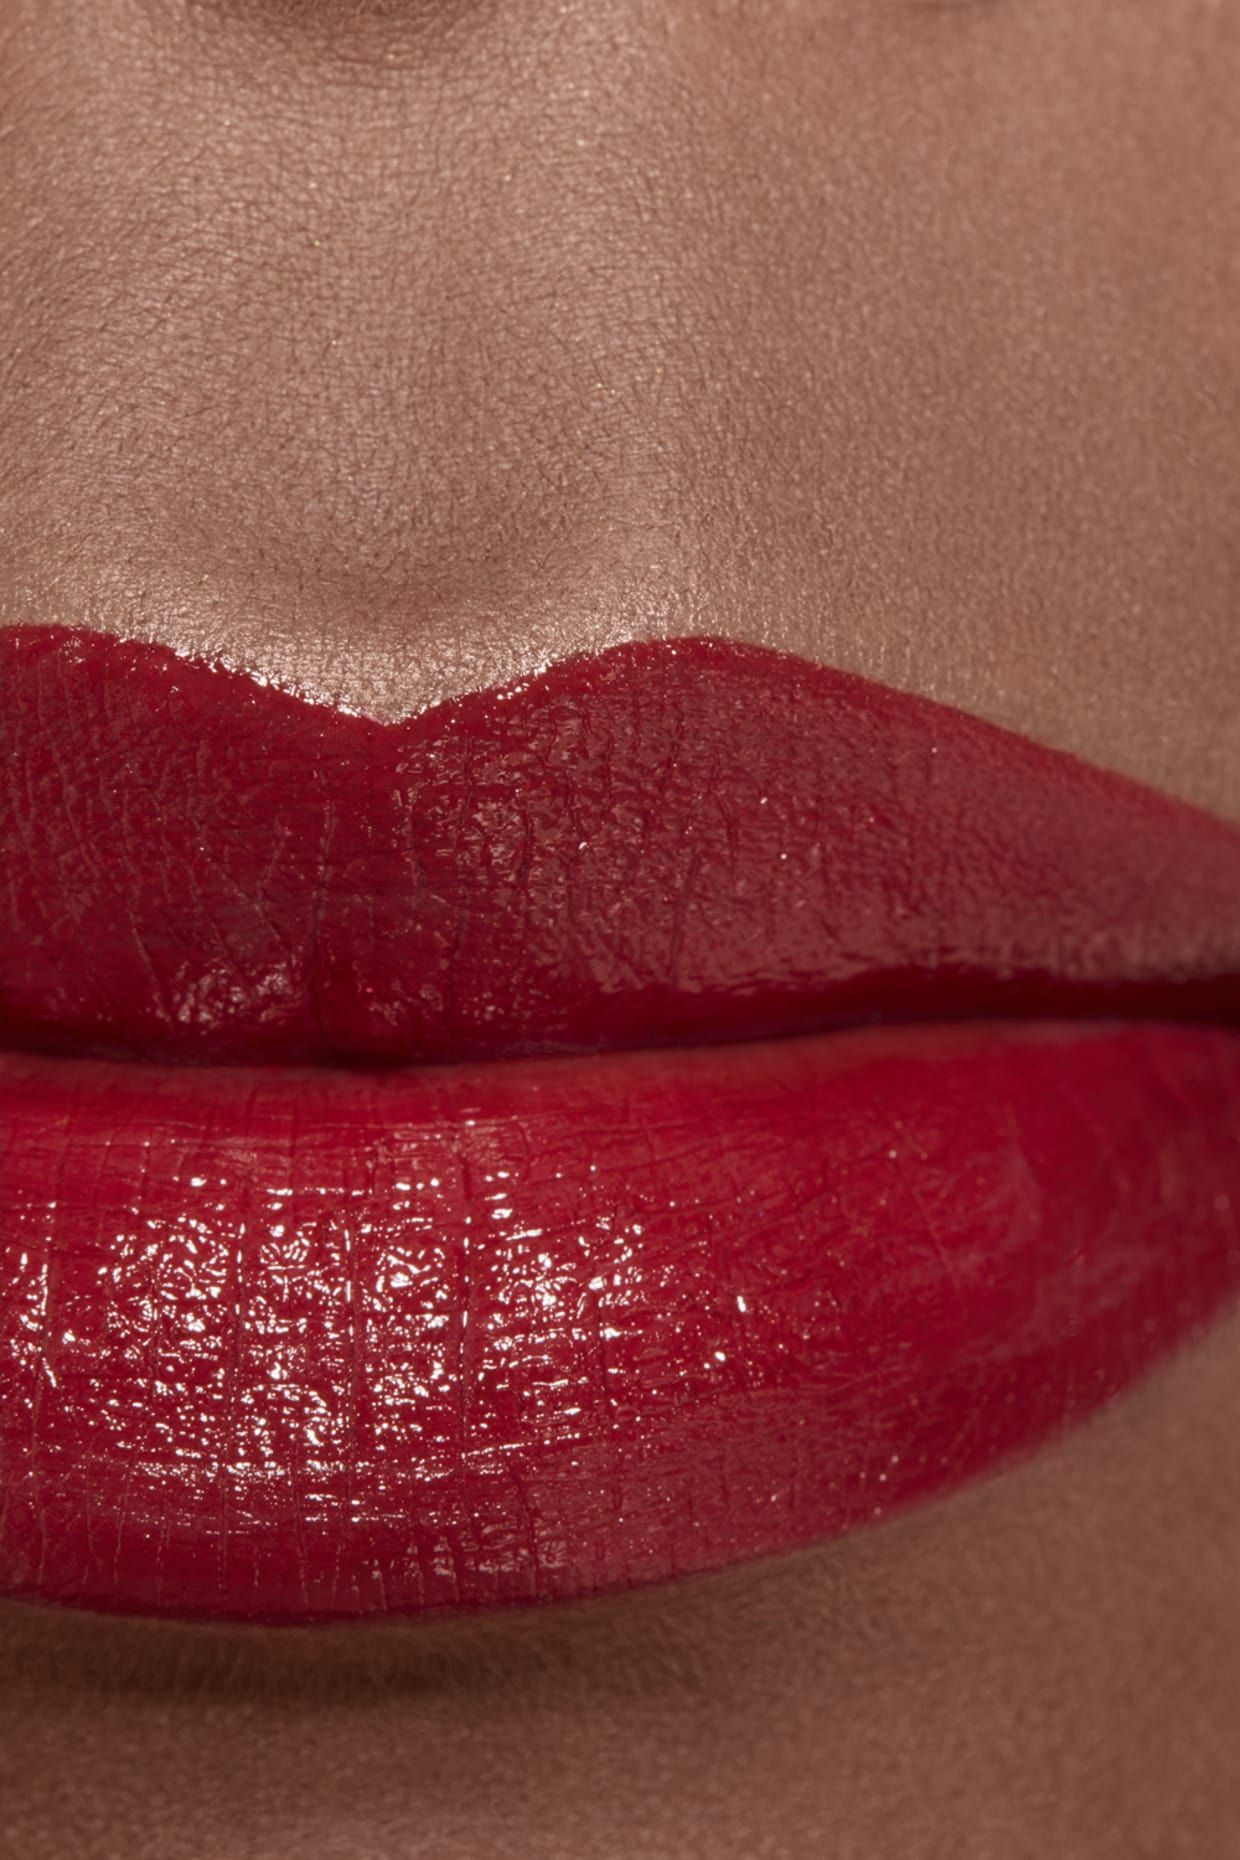 Chanel Rouge Coco Flash Lipstick Collection Image By Dennis Dunham